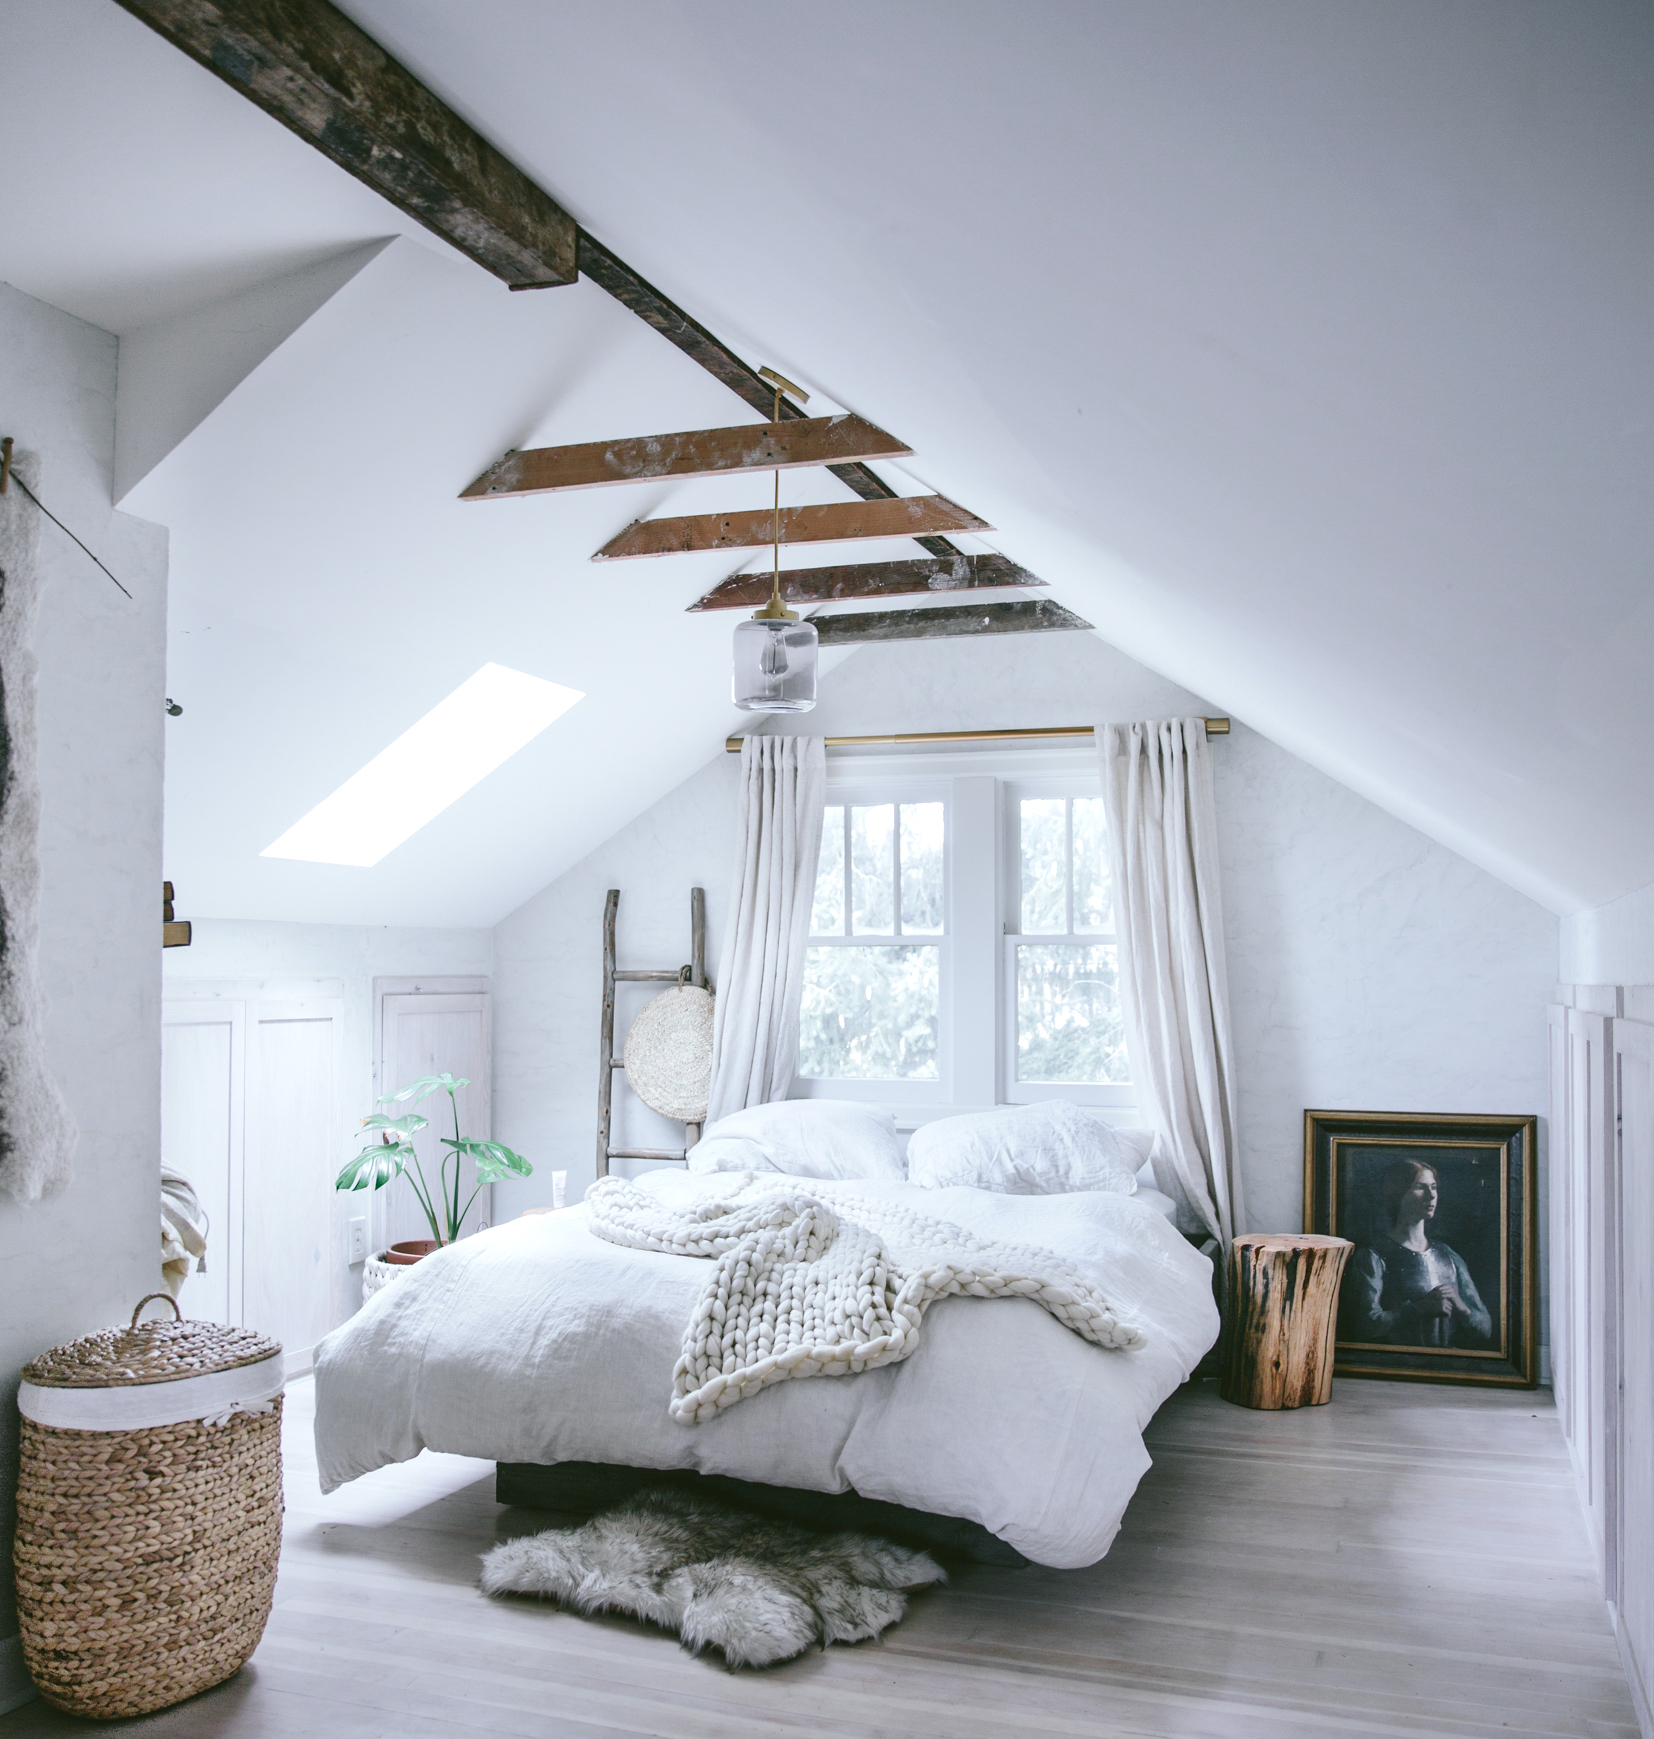 Bedroom Inspiration Pitched Roof